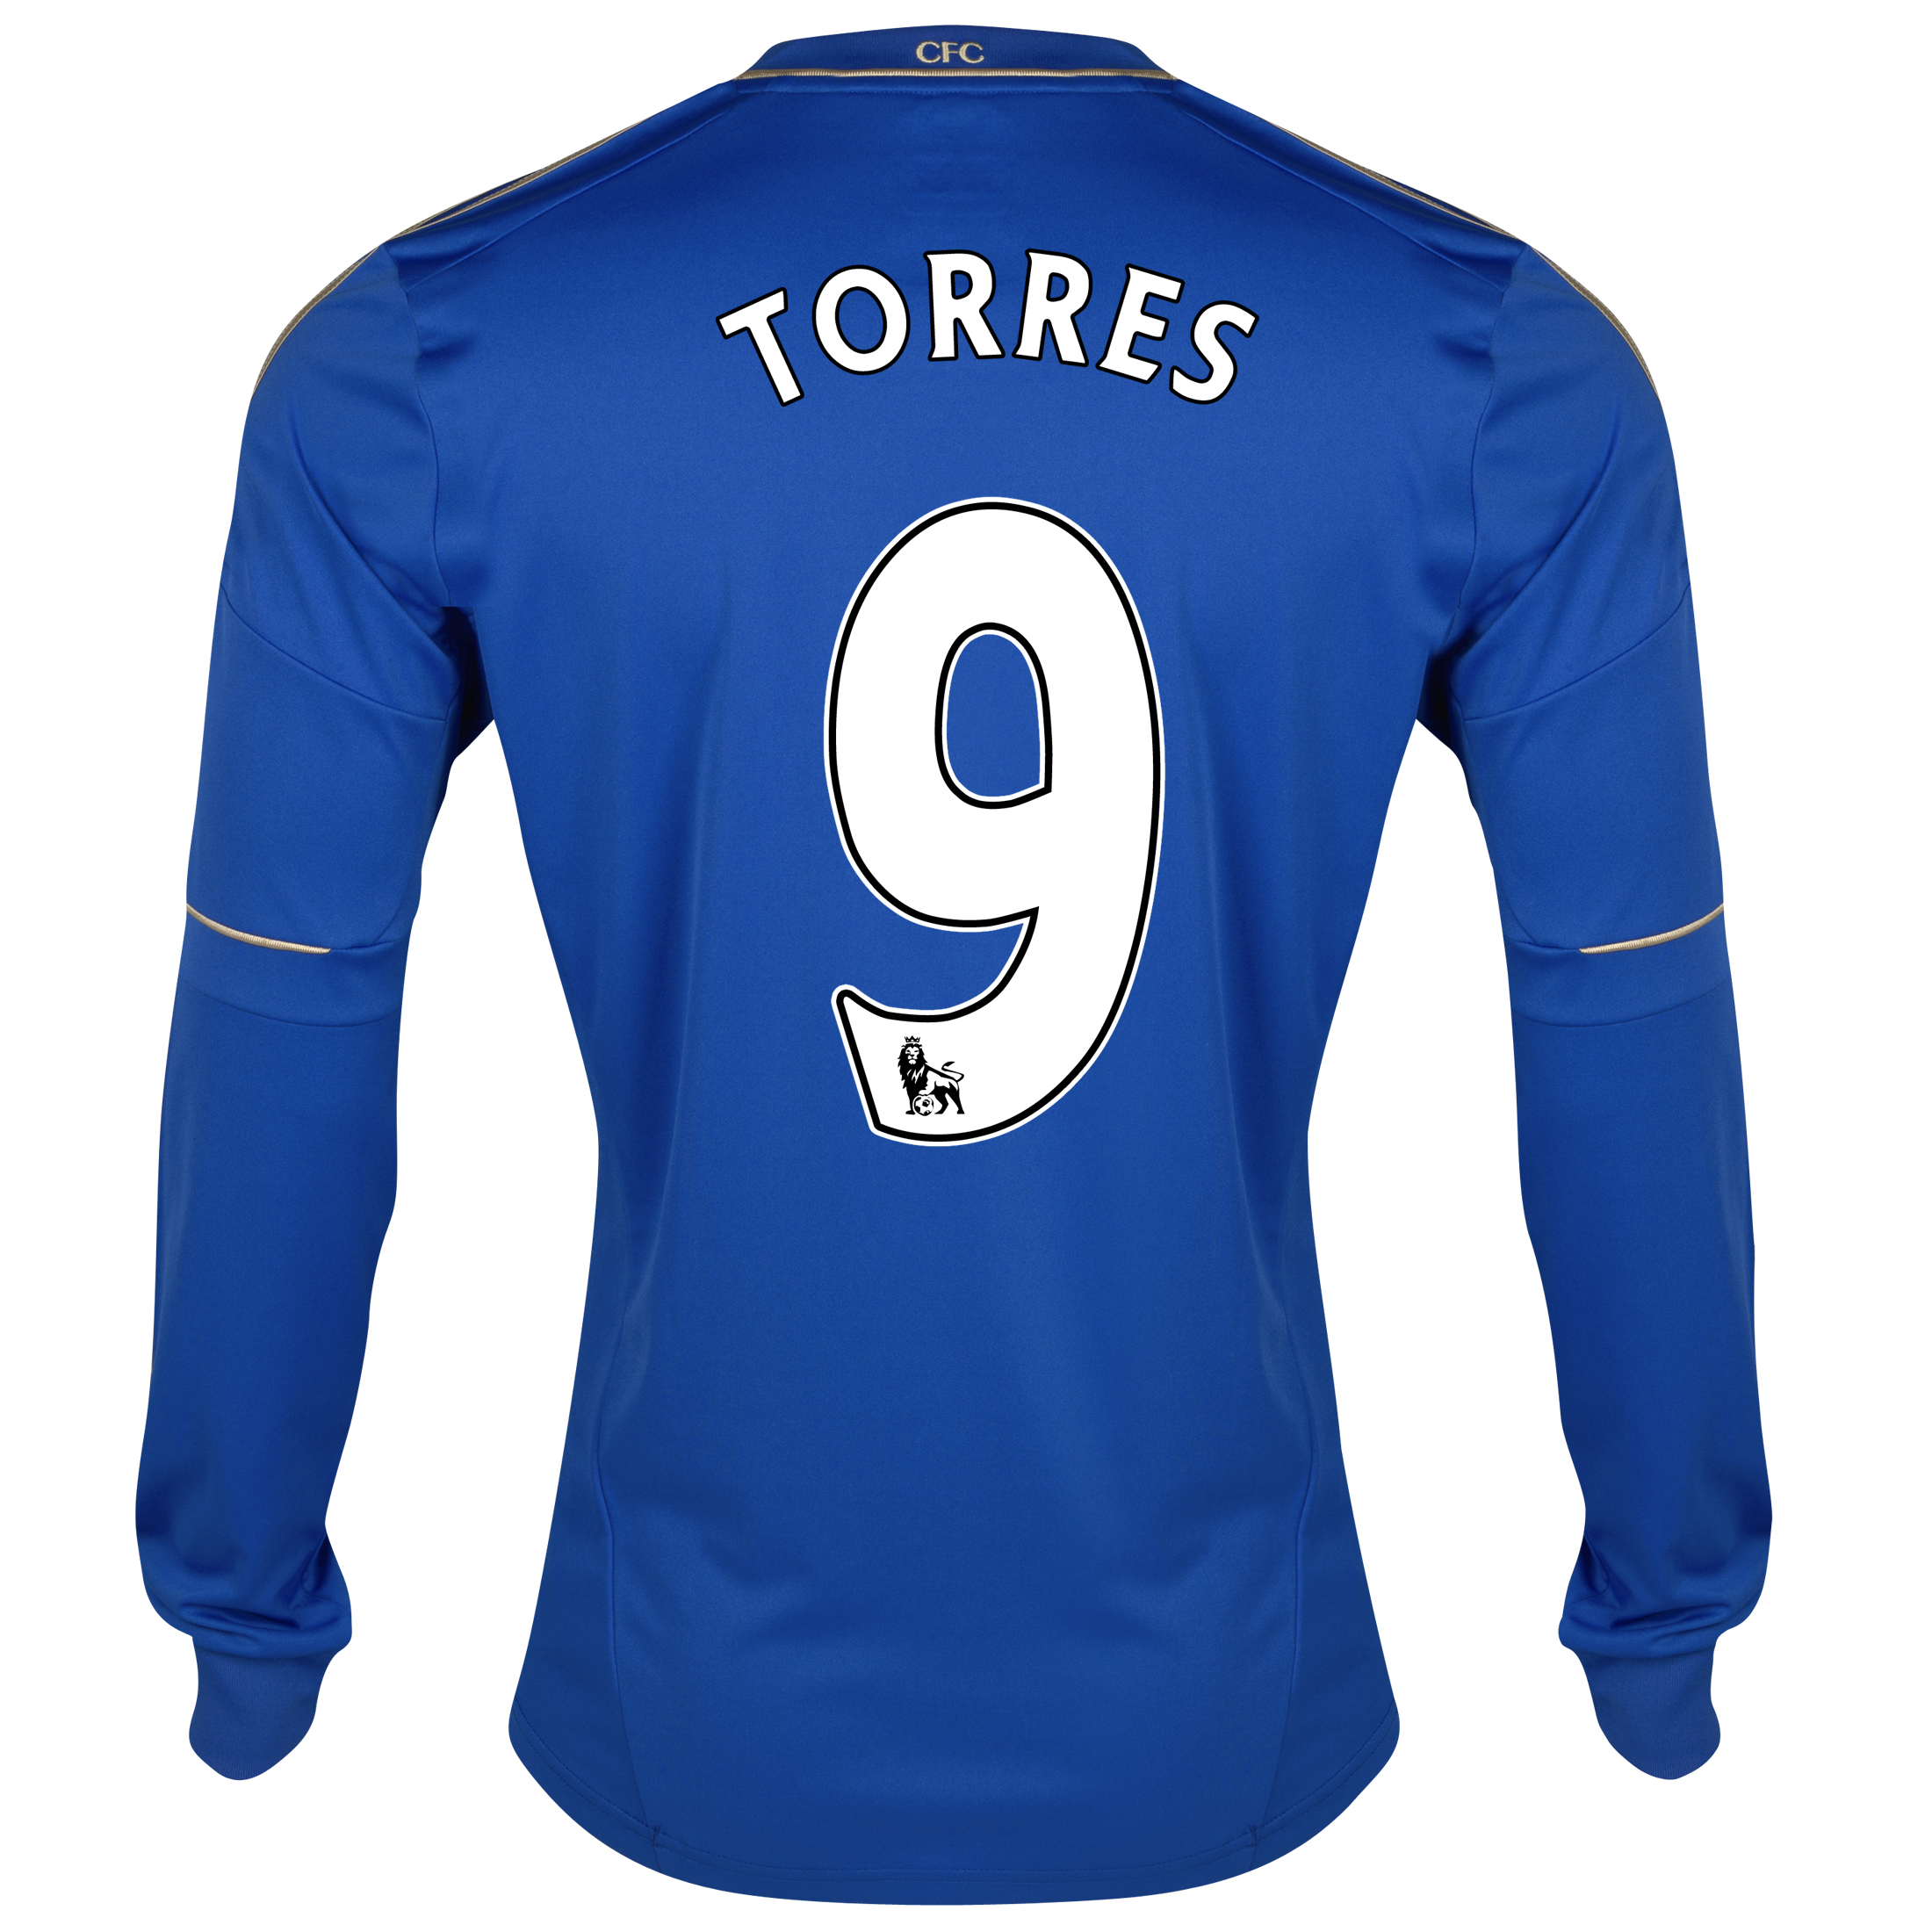 Chelsea Home Shirt 2012/13 - Long Sleeved - Youths with Torres 9 printing